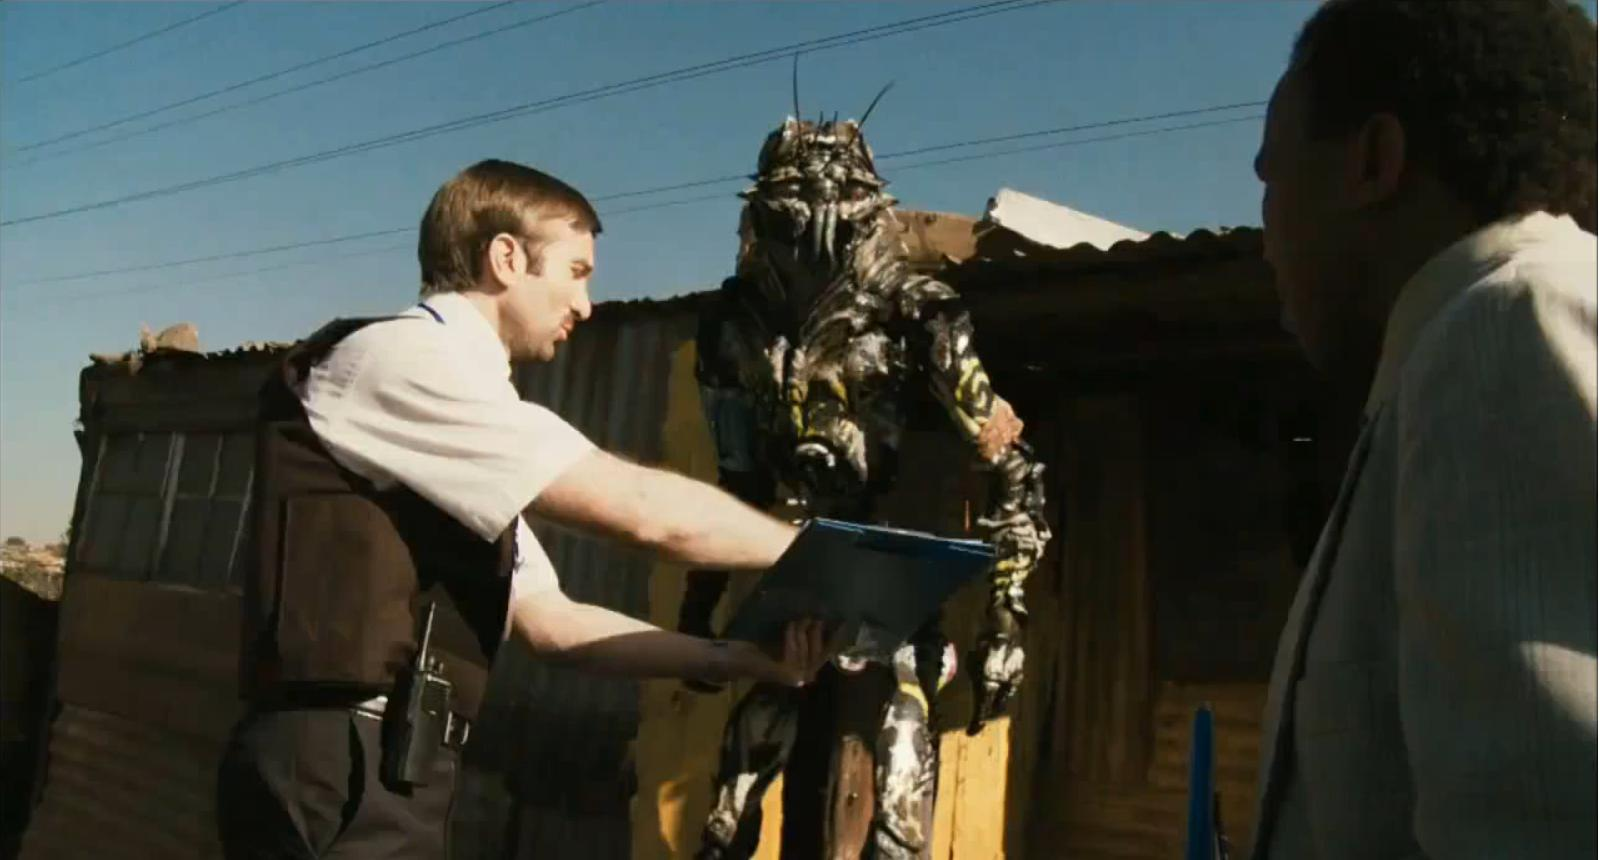 snbo gma 7 movies 2014 district 9